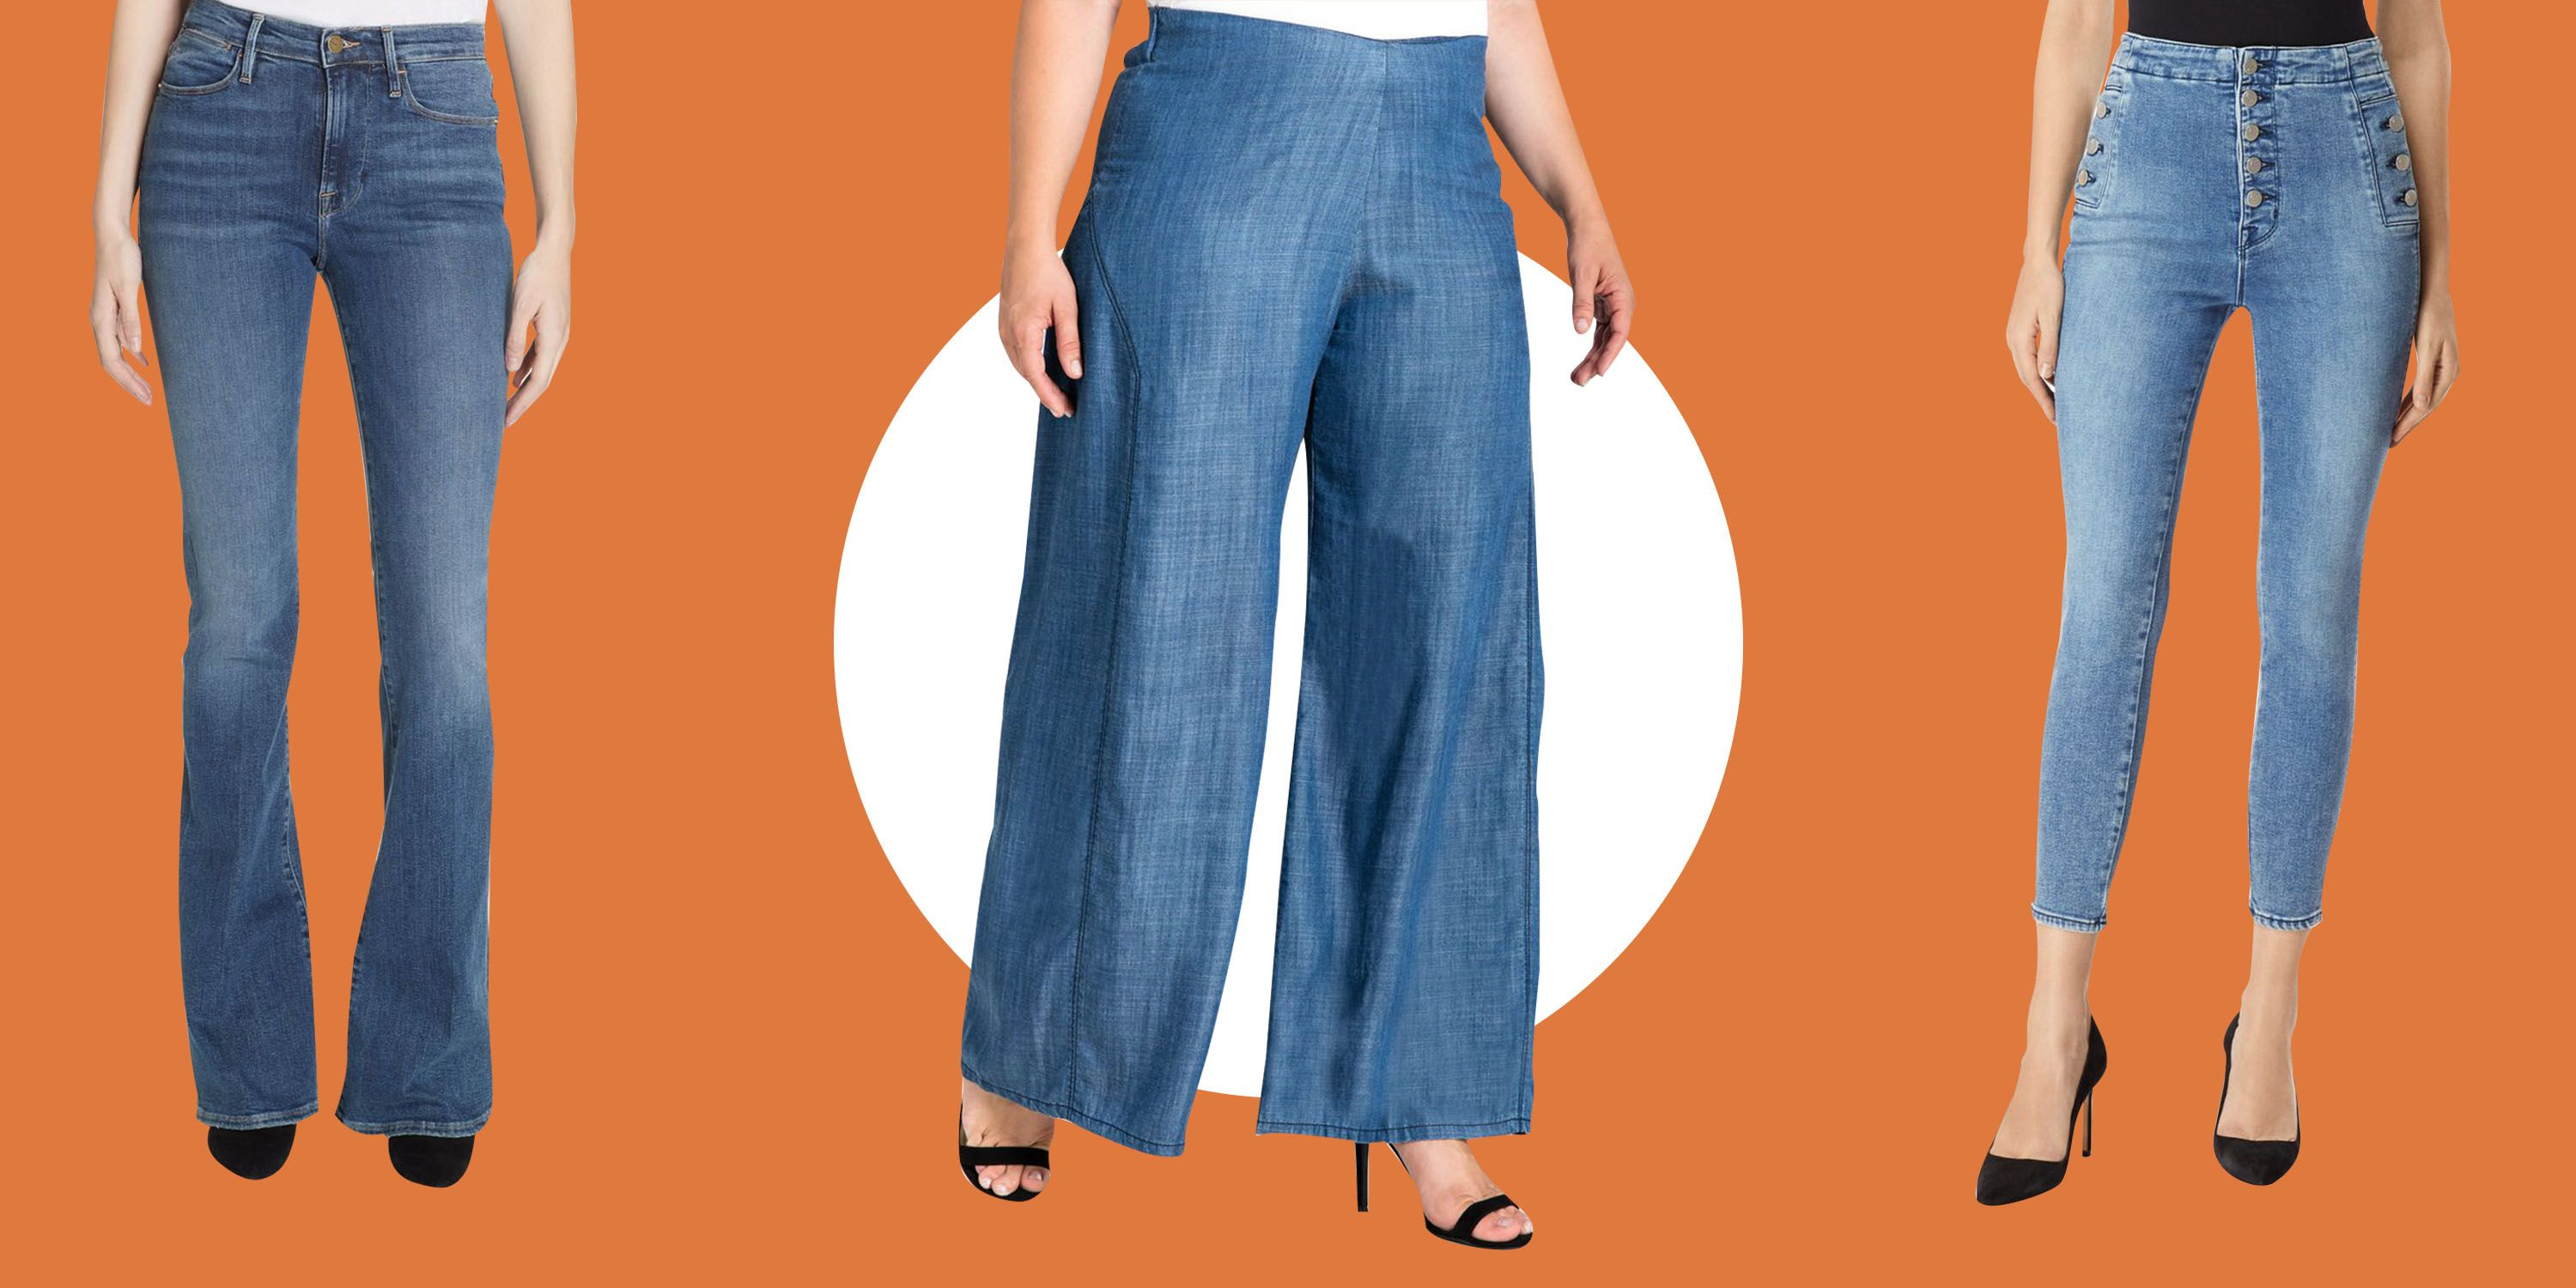 217db8574929 The Most Flattering High-Waisted Jeans for Every Body Type